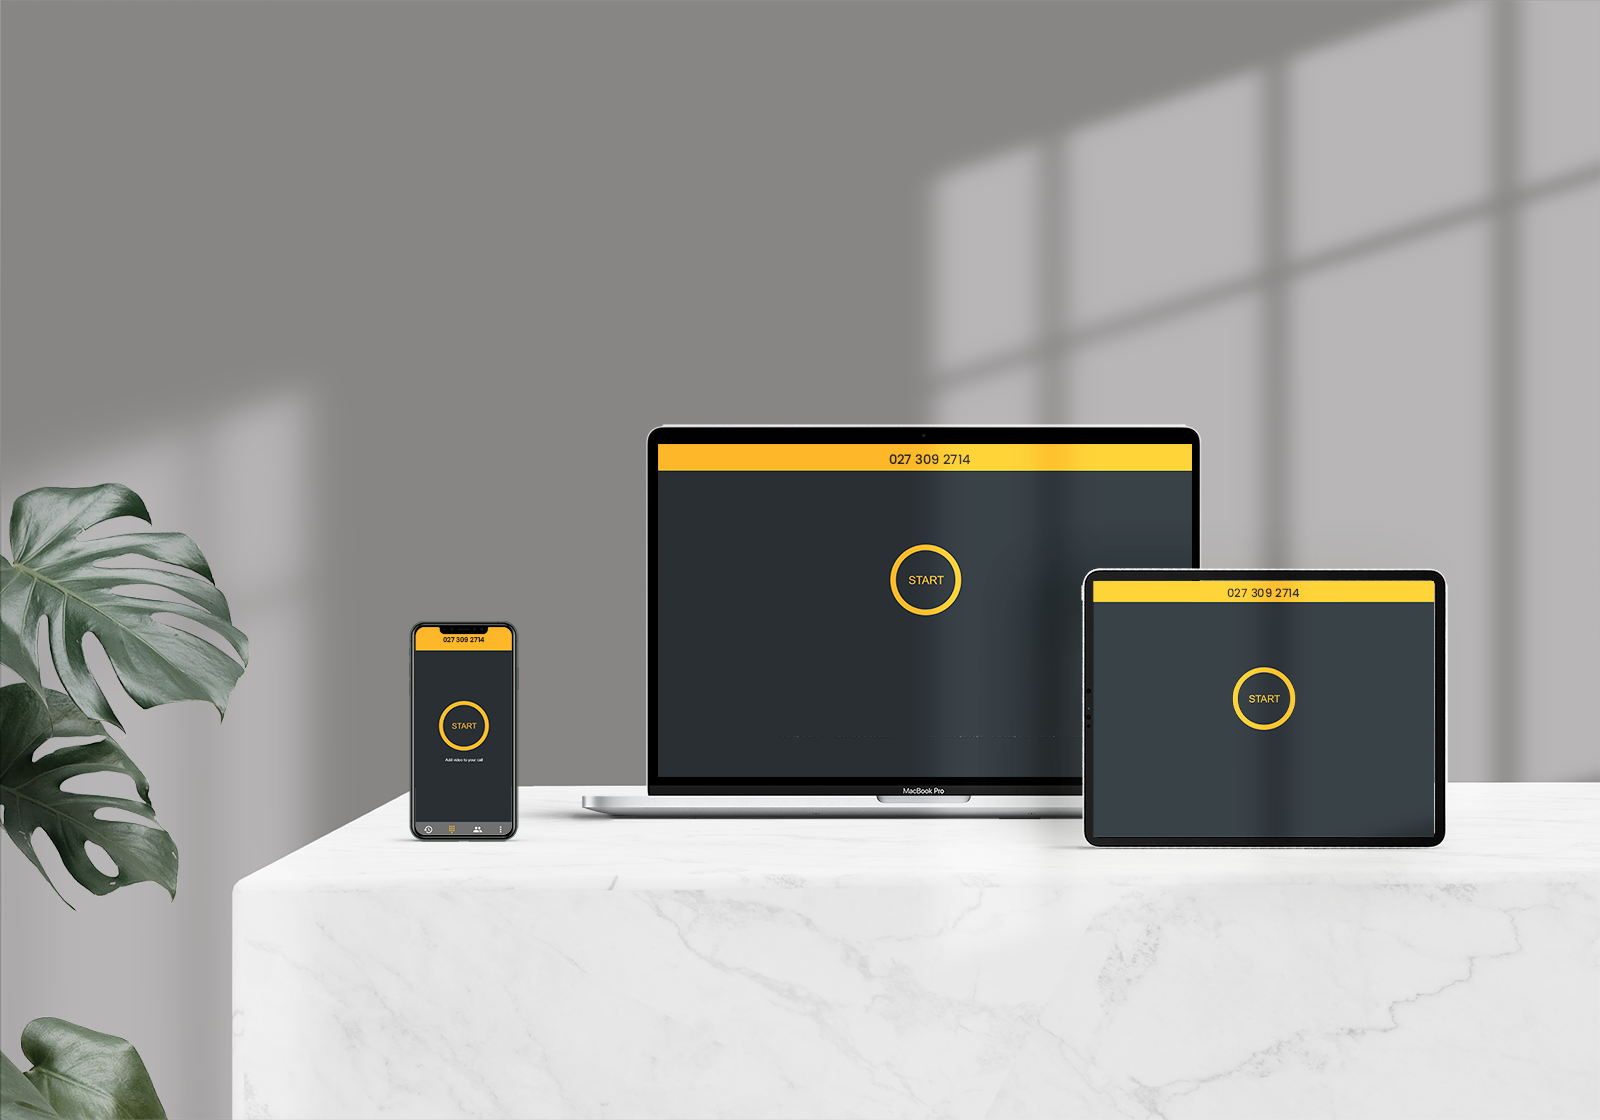 Zyte is available across many different devices.